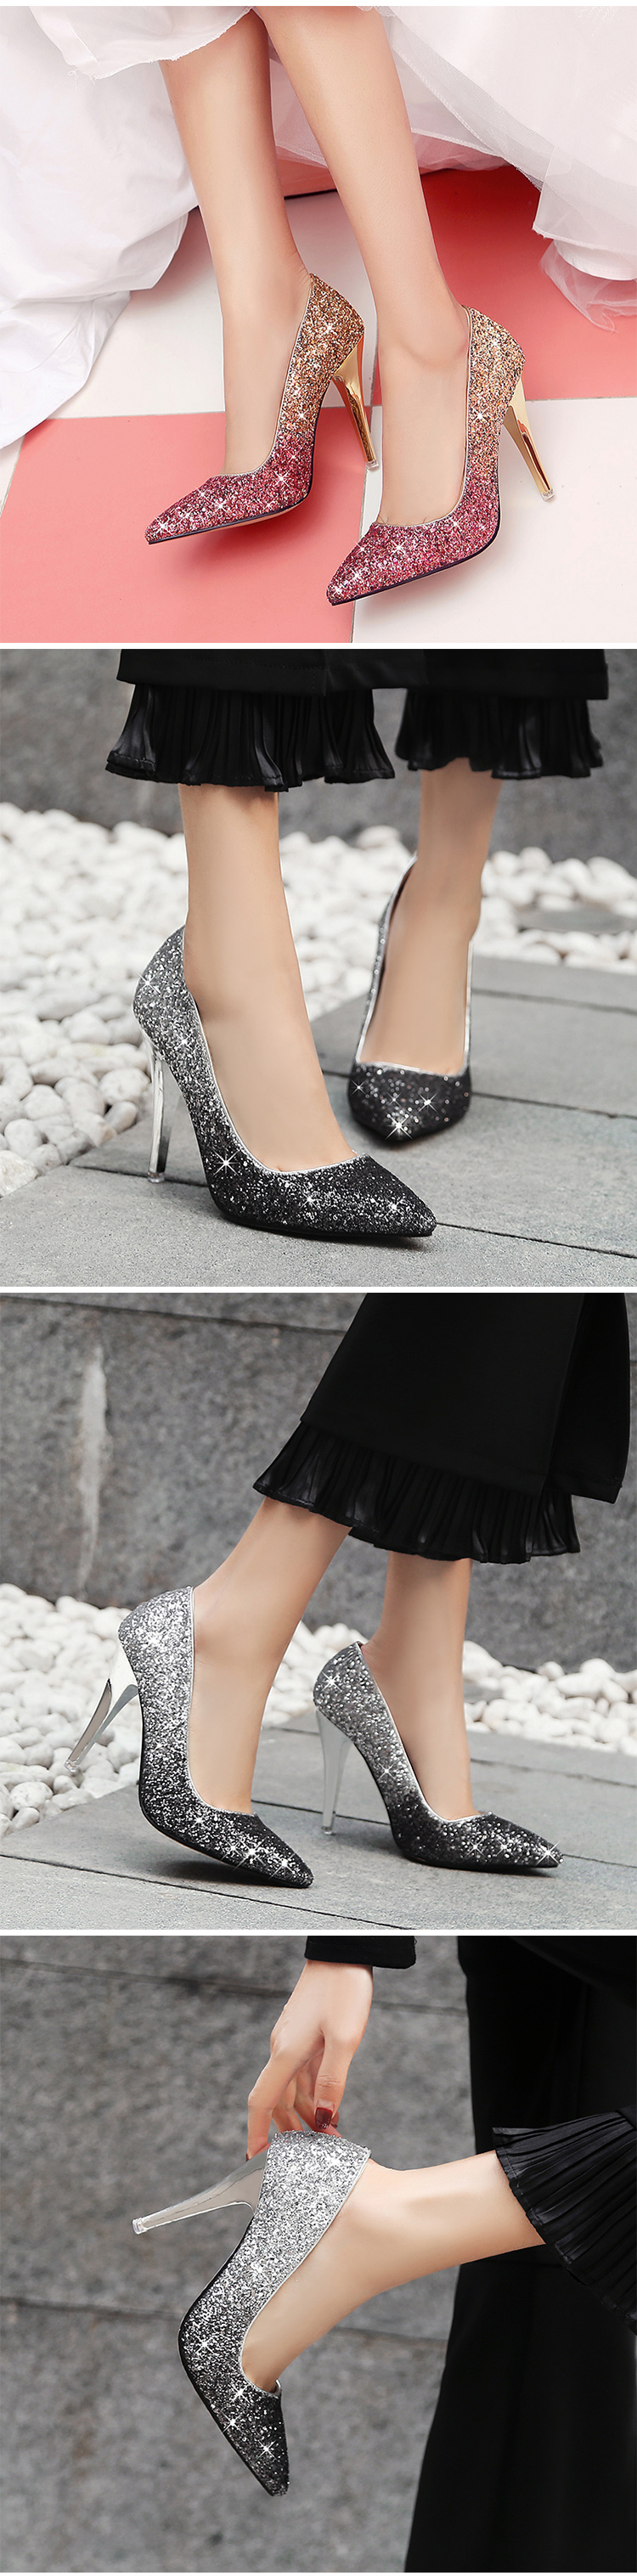 18 New High thin heels shoes women pumps bling wedding Bridal shoes classic 1cm 5.5cm or 8.5cm pointed toe evening party shoes 7